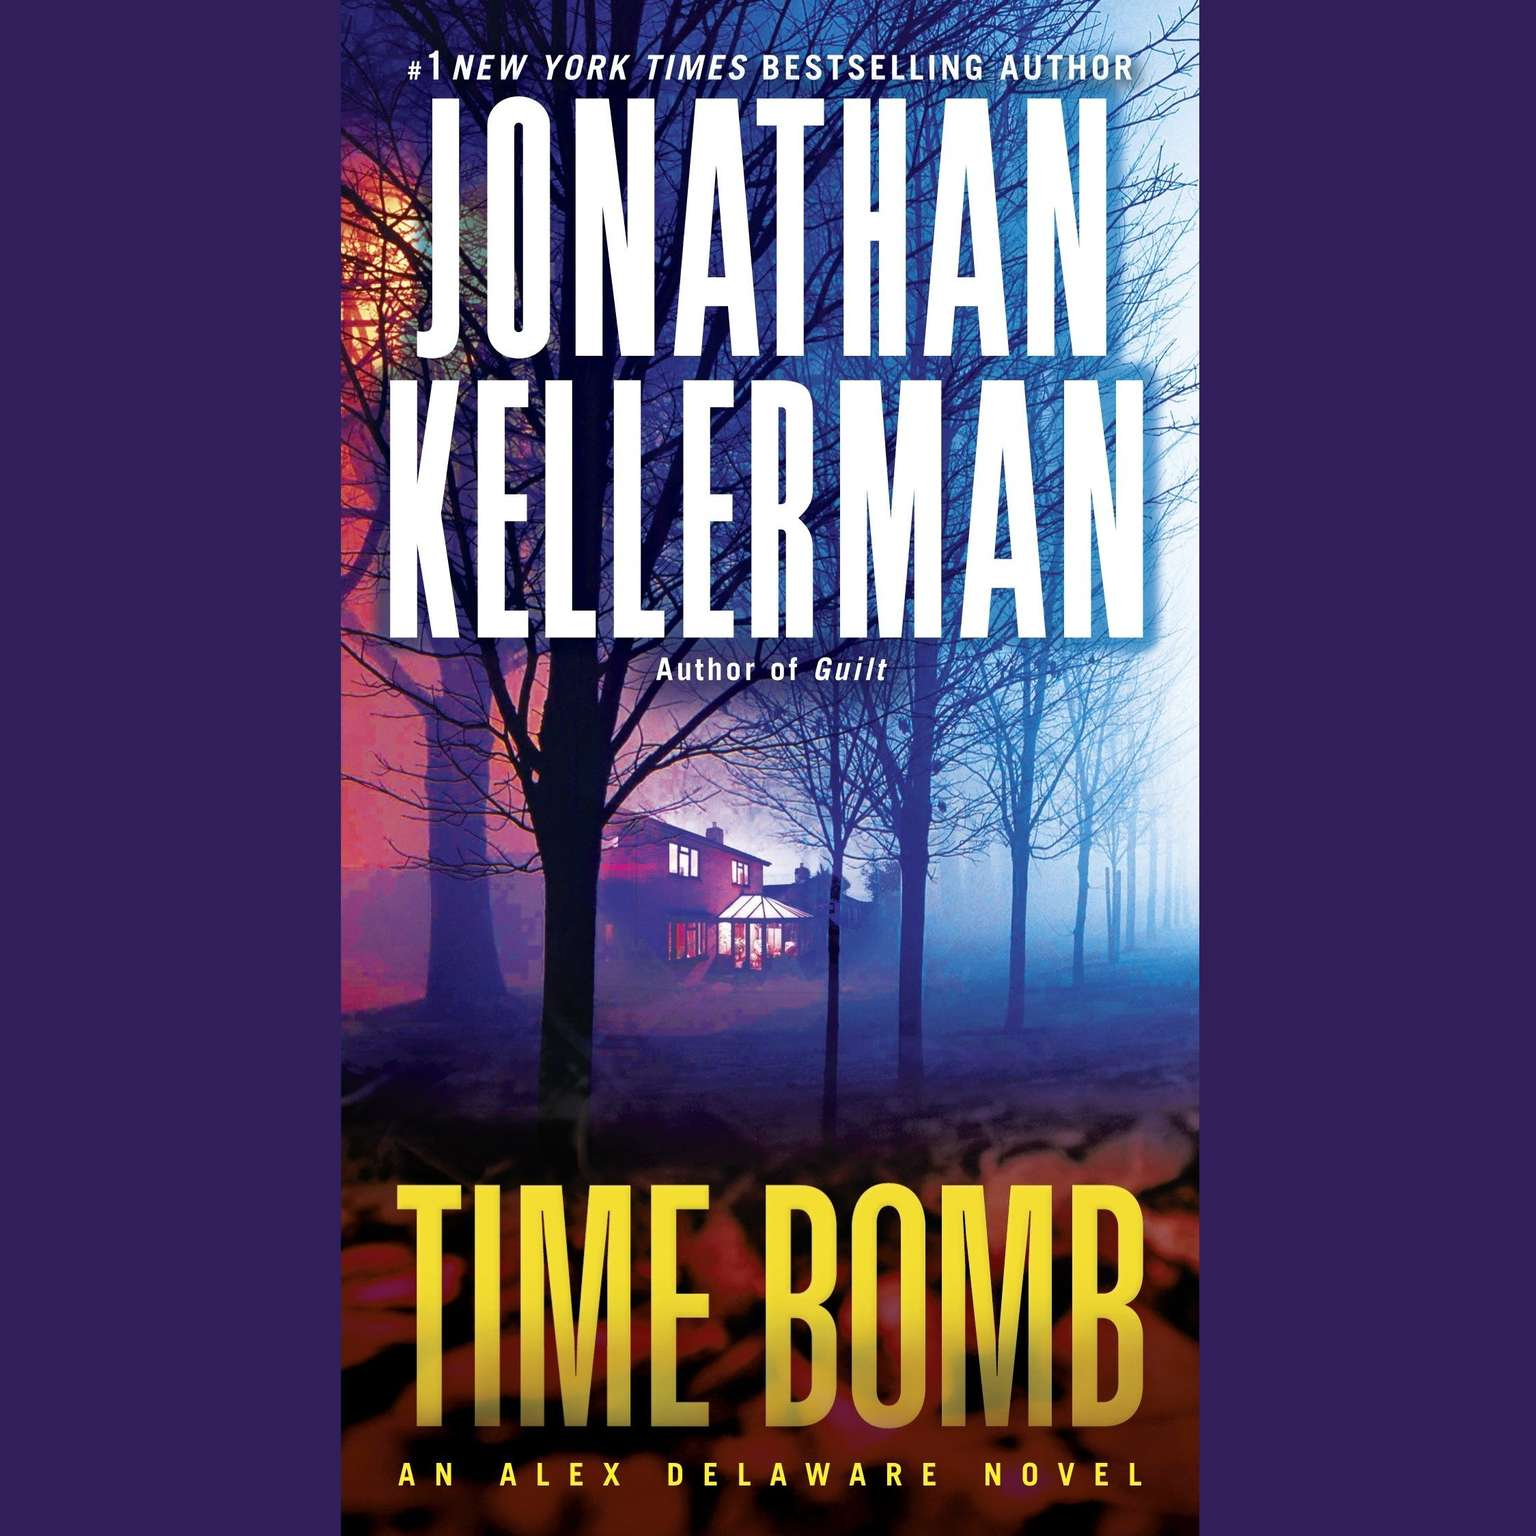 Printable Time Bomb: An Alex Delaware Novel Audiobook Cover Art